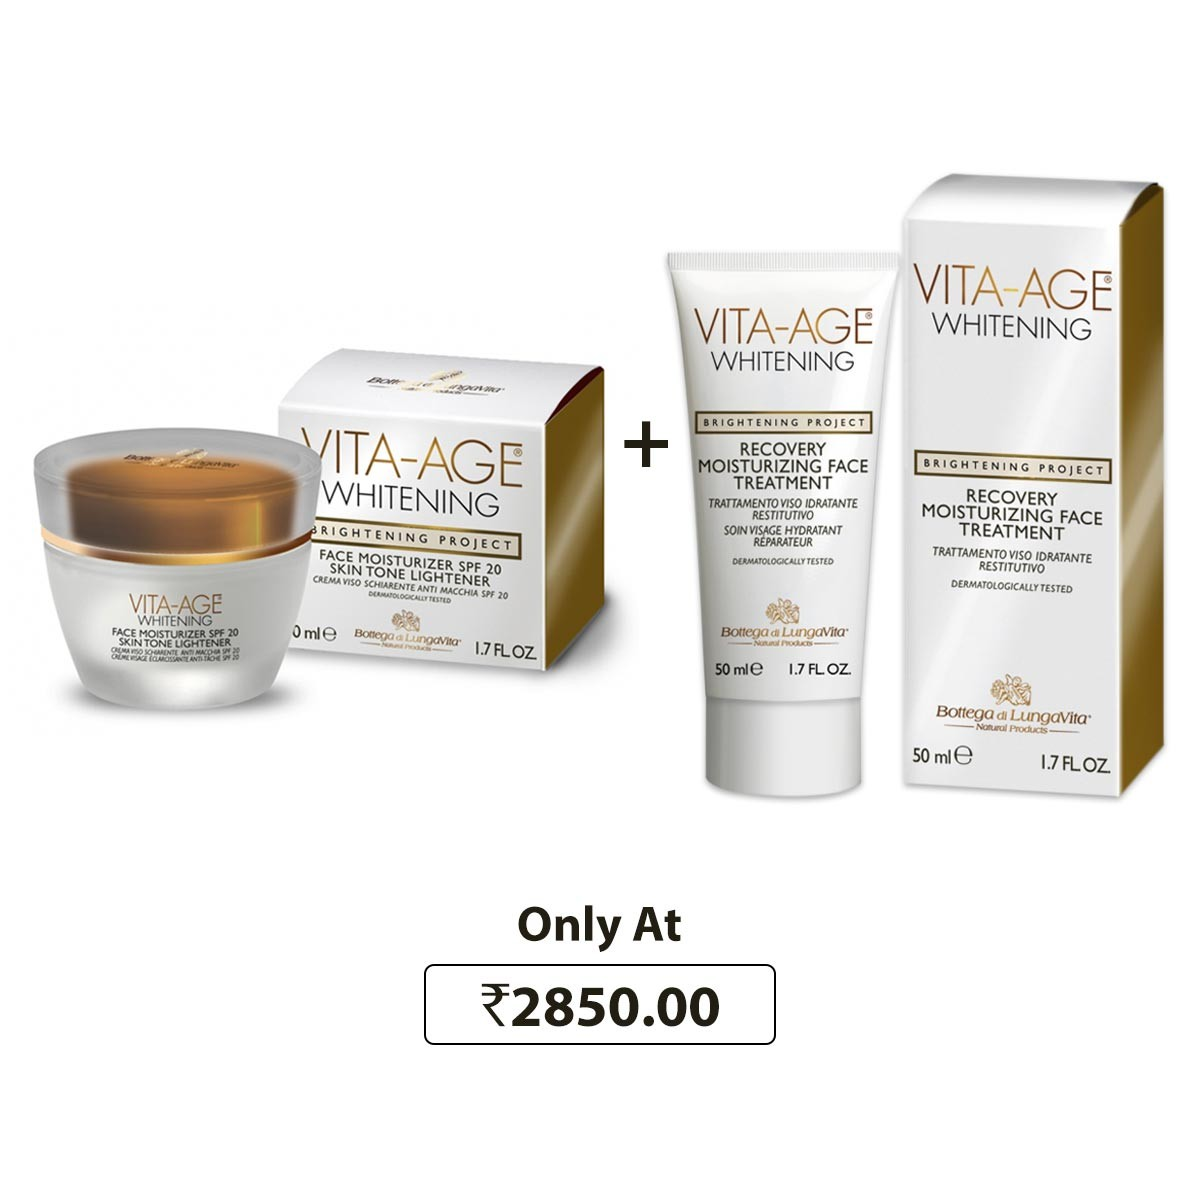 Bottega Di Lungavita Whitening Face Moisturizer + Bottega Di Lungavita Whitening Recovery Moisturizing Face Treatment Combo